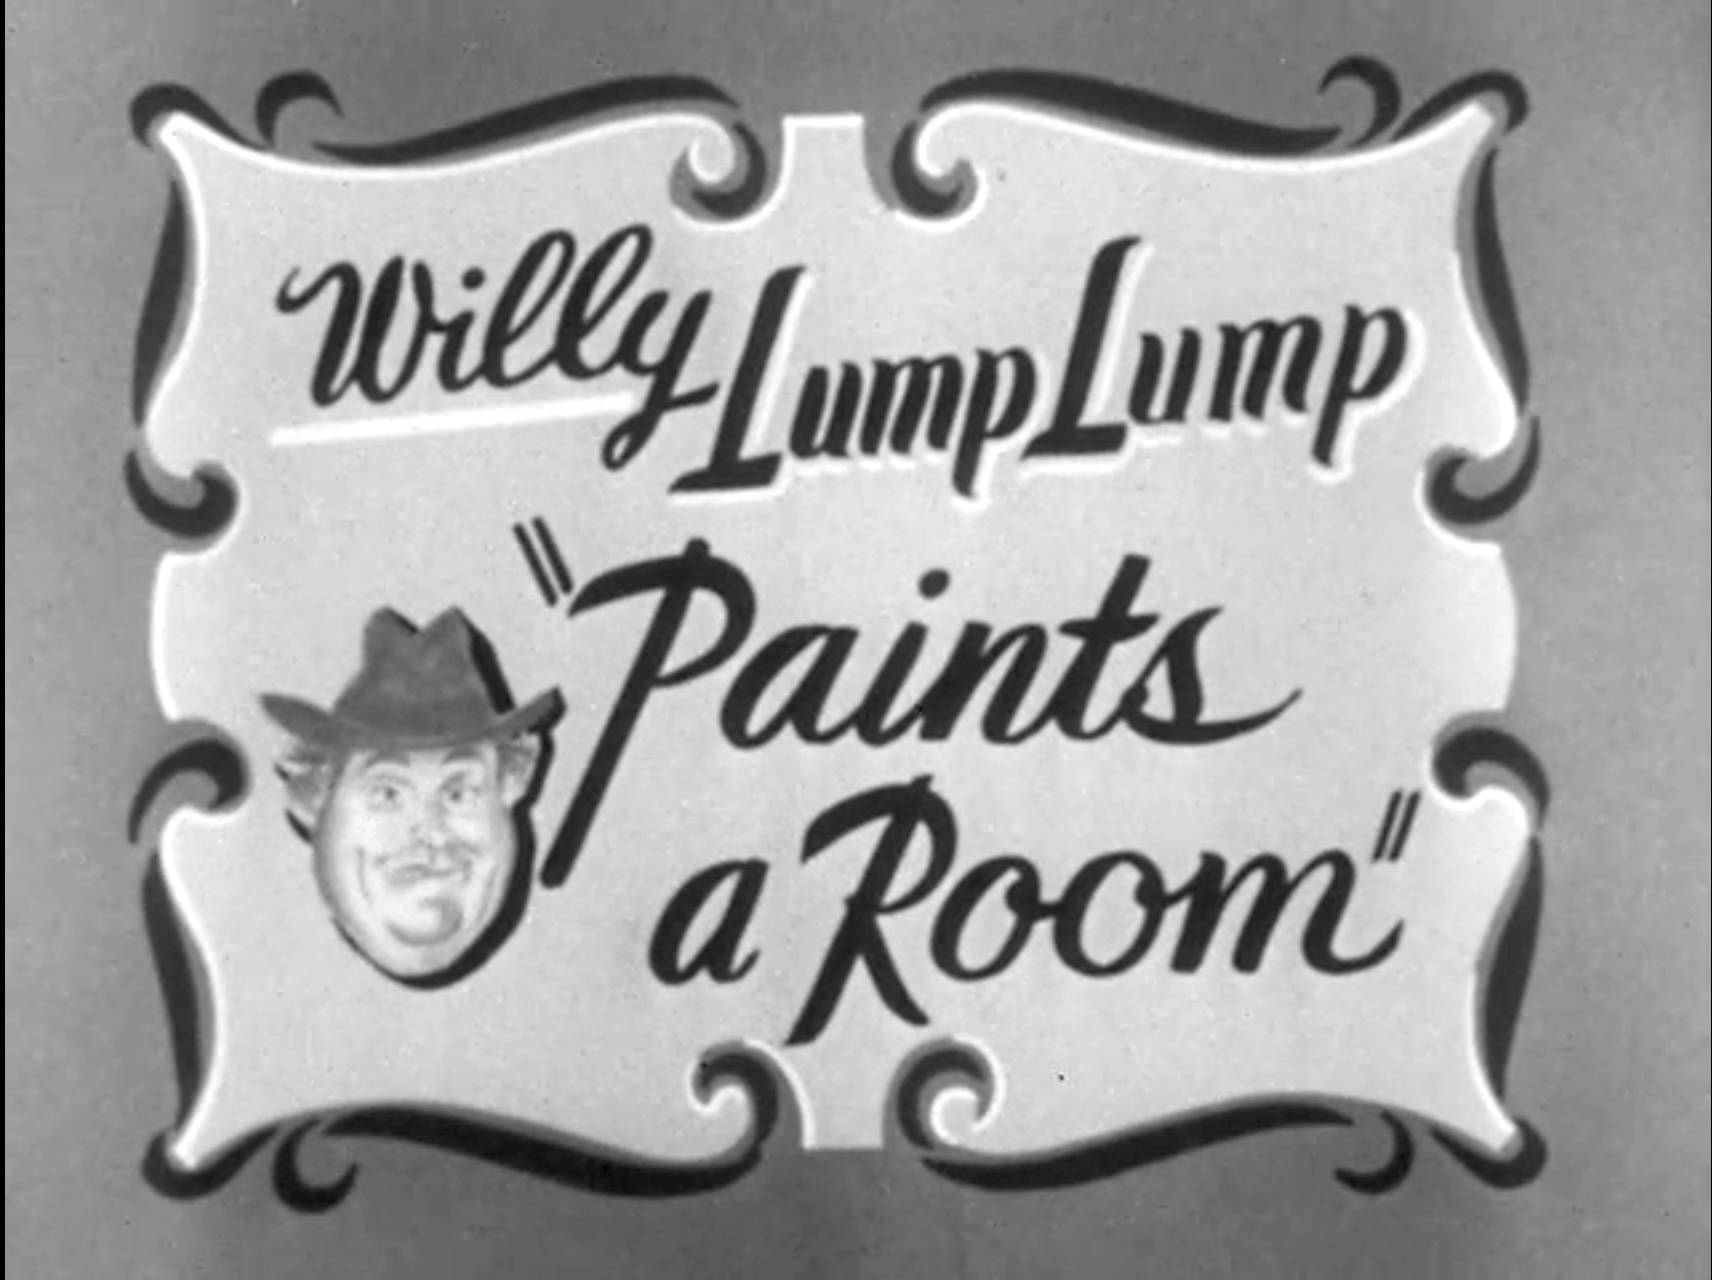 Willie Paints a Room titlea